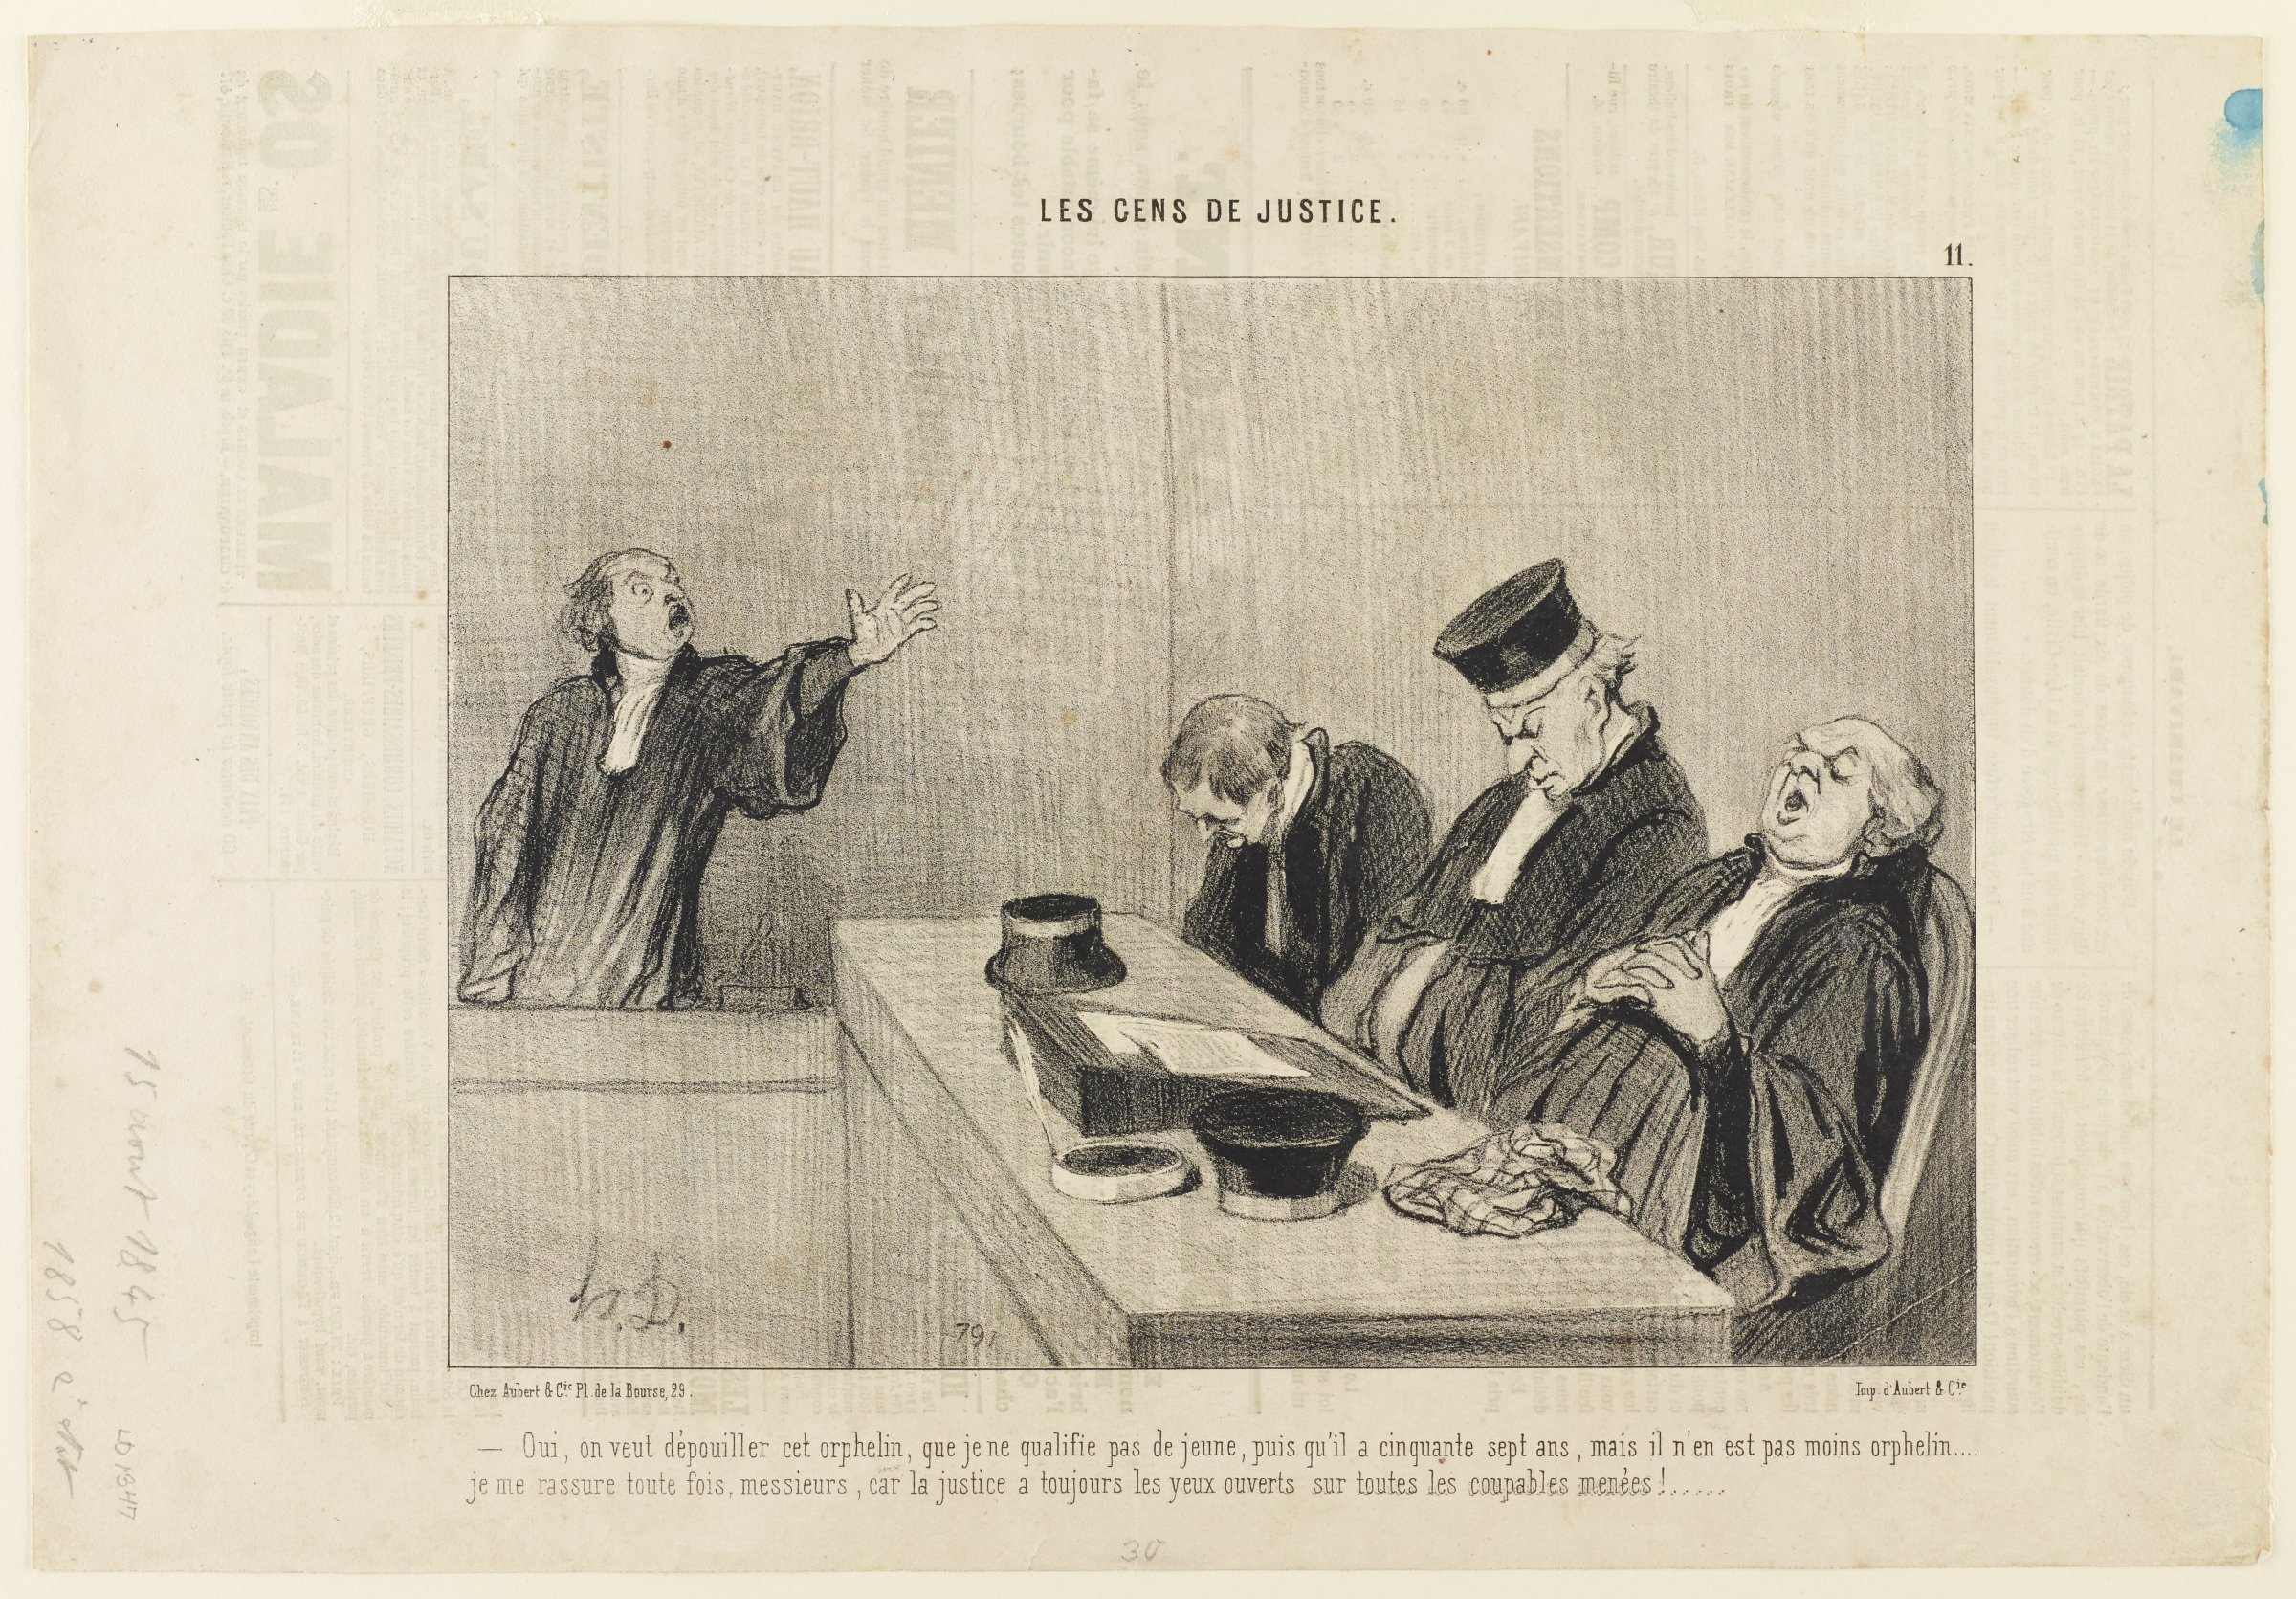 On the left, a man yells out to his fellow justices. On the right, three justices sit in their seats asleep.